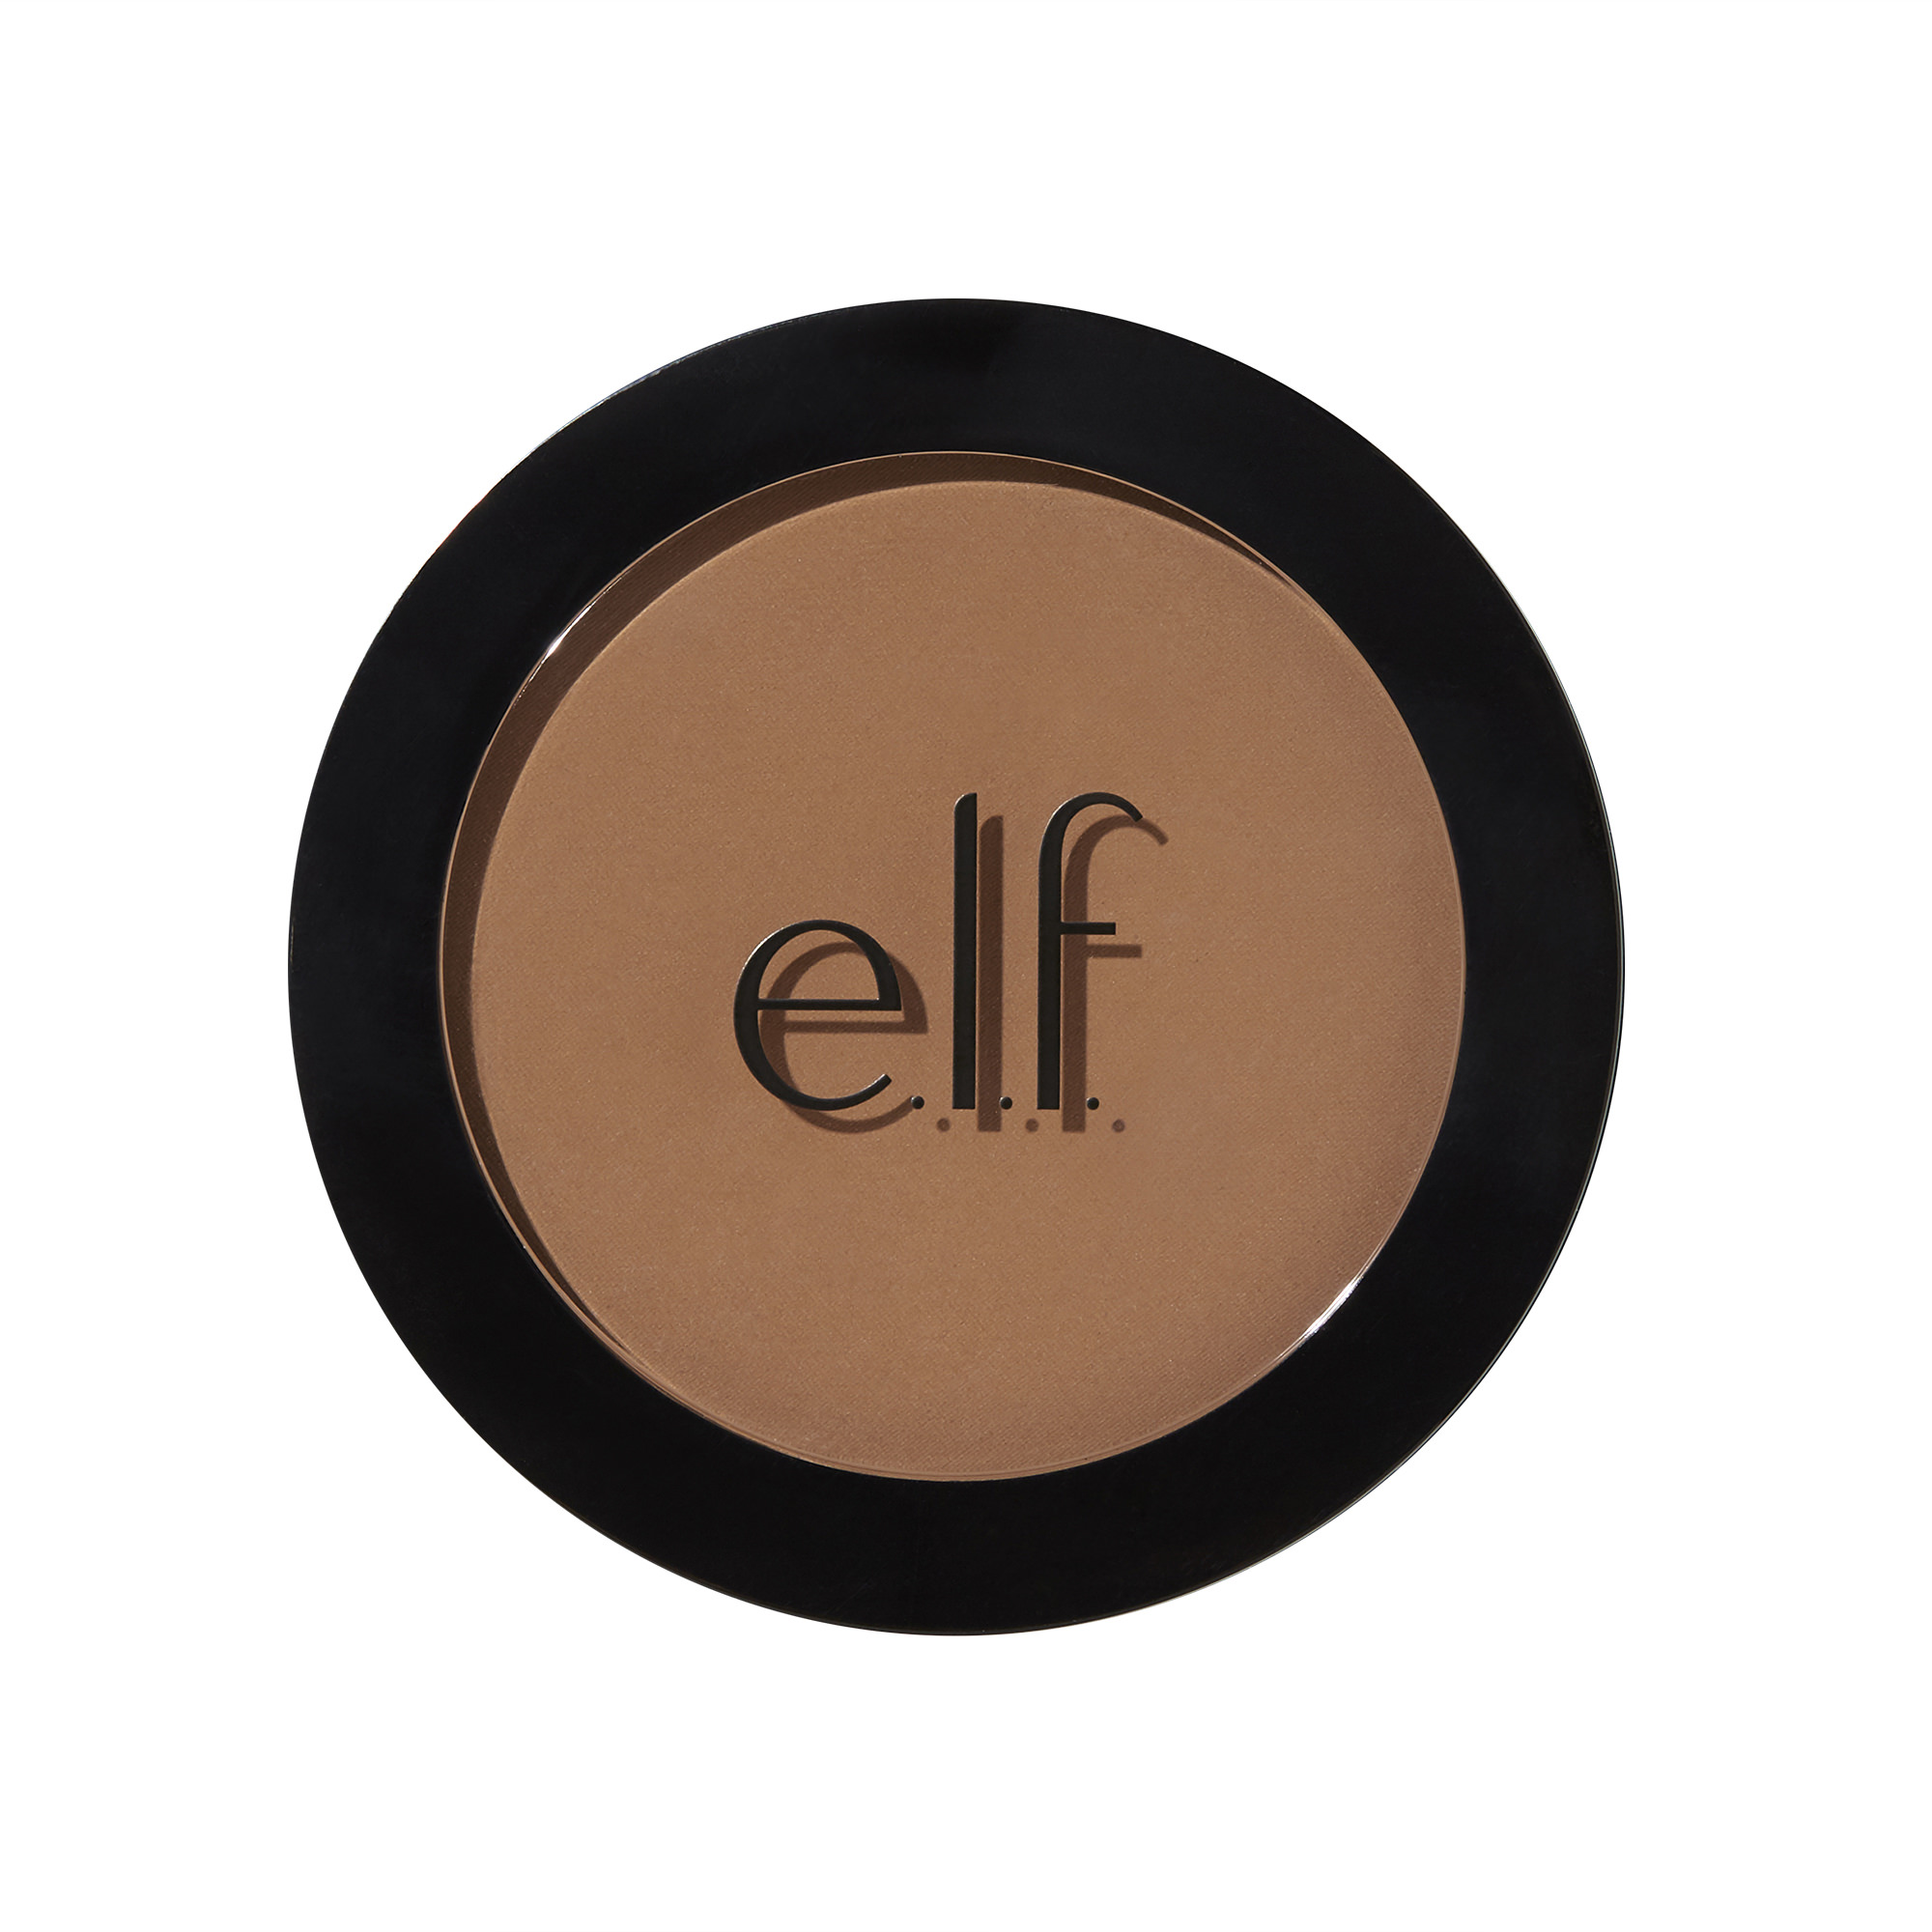 e.l.f. Cosmetics Primer-Infused Bronzer, Forever Sunkissed